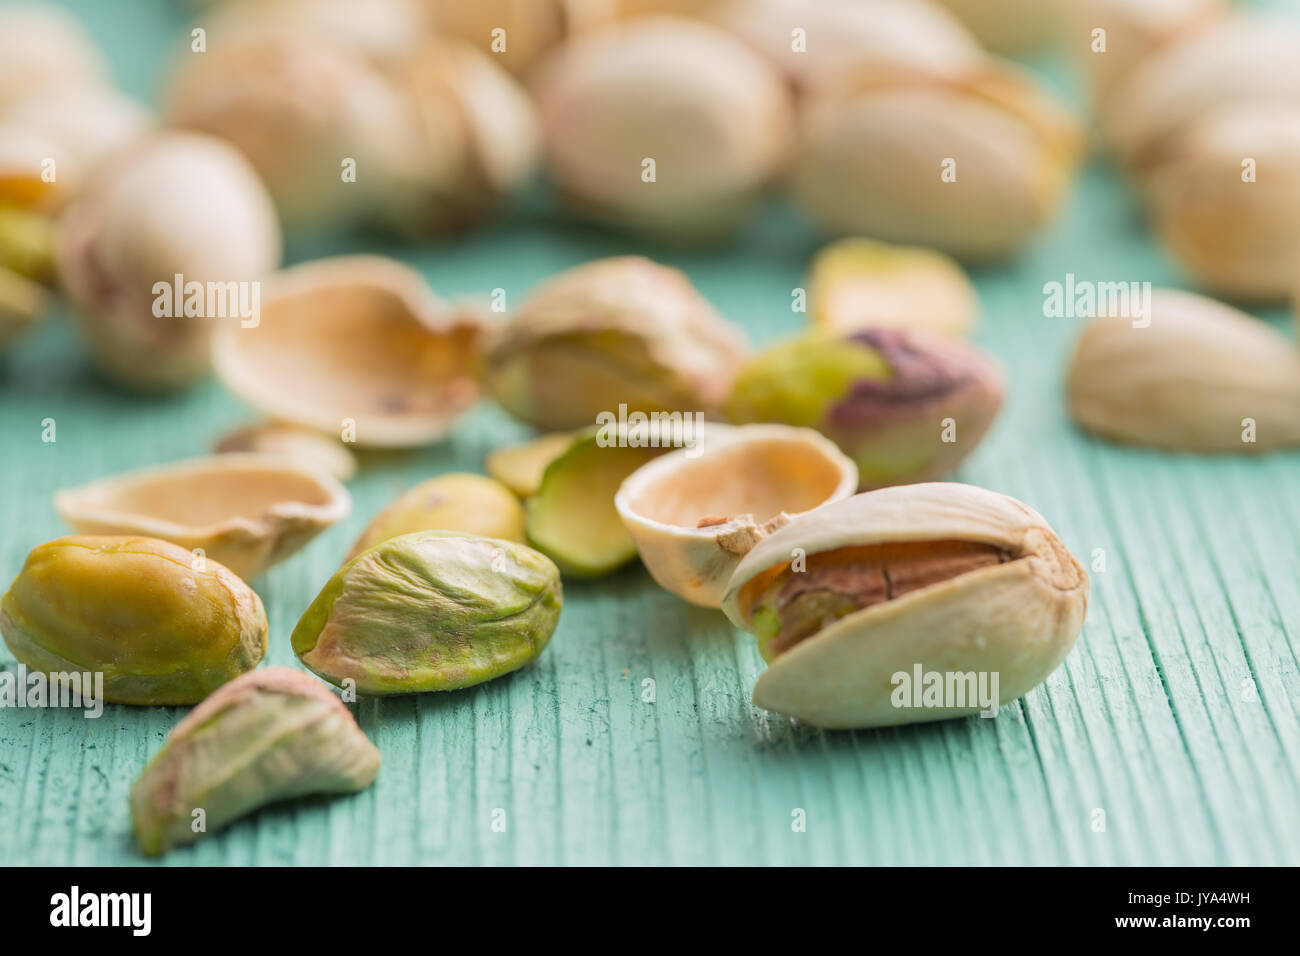 Dried pistachio nuts. On green wooden table.  Pistachio kernel. - Stock Image